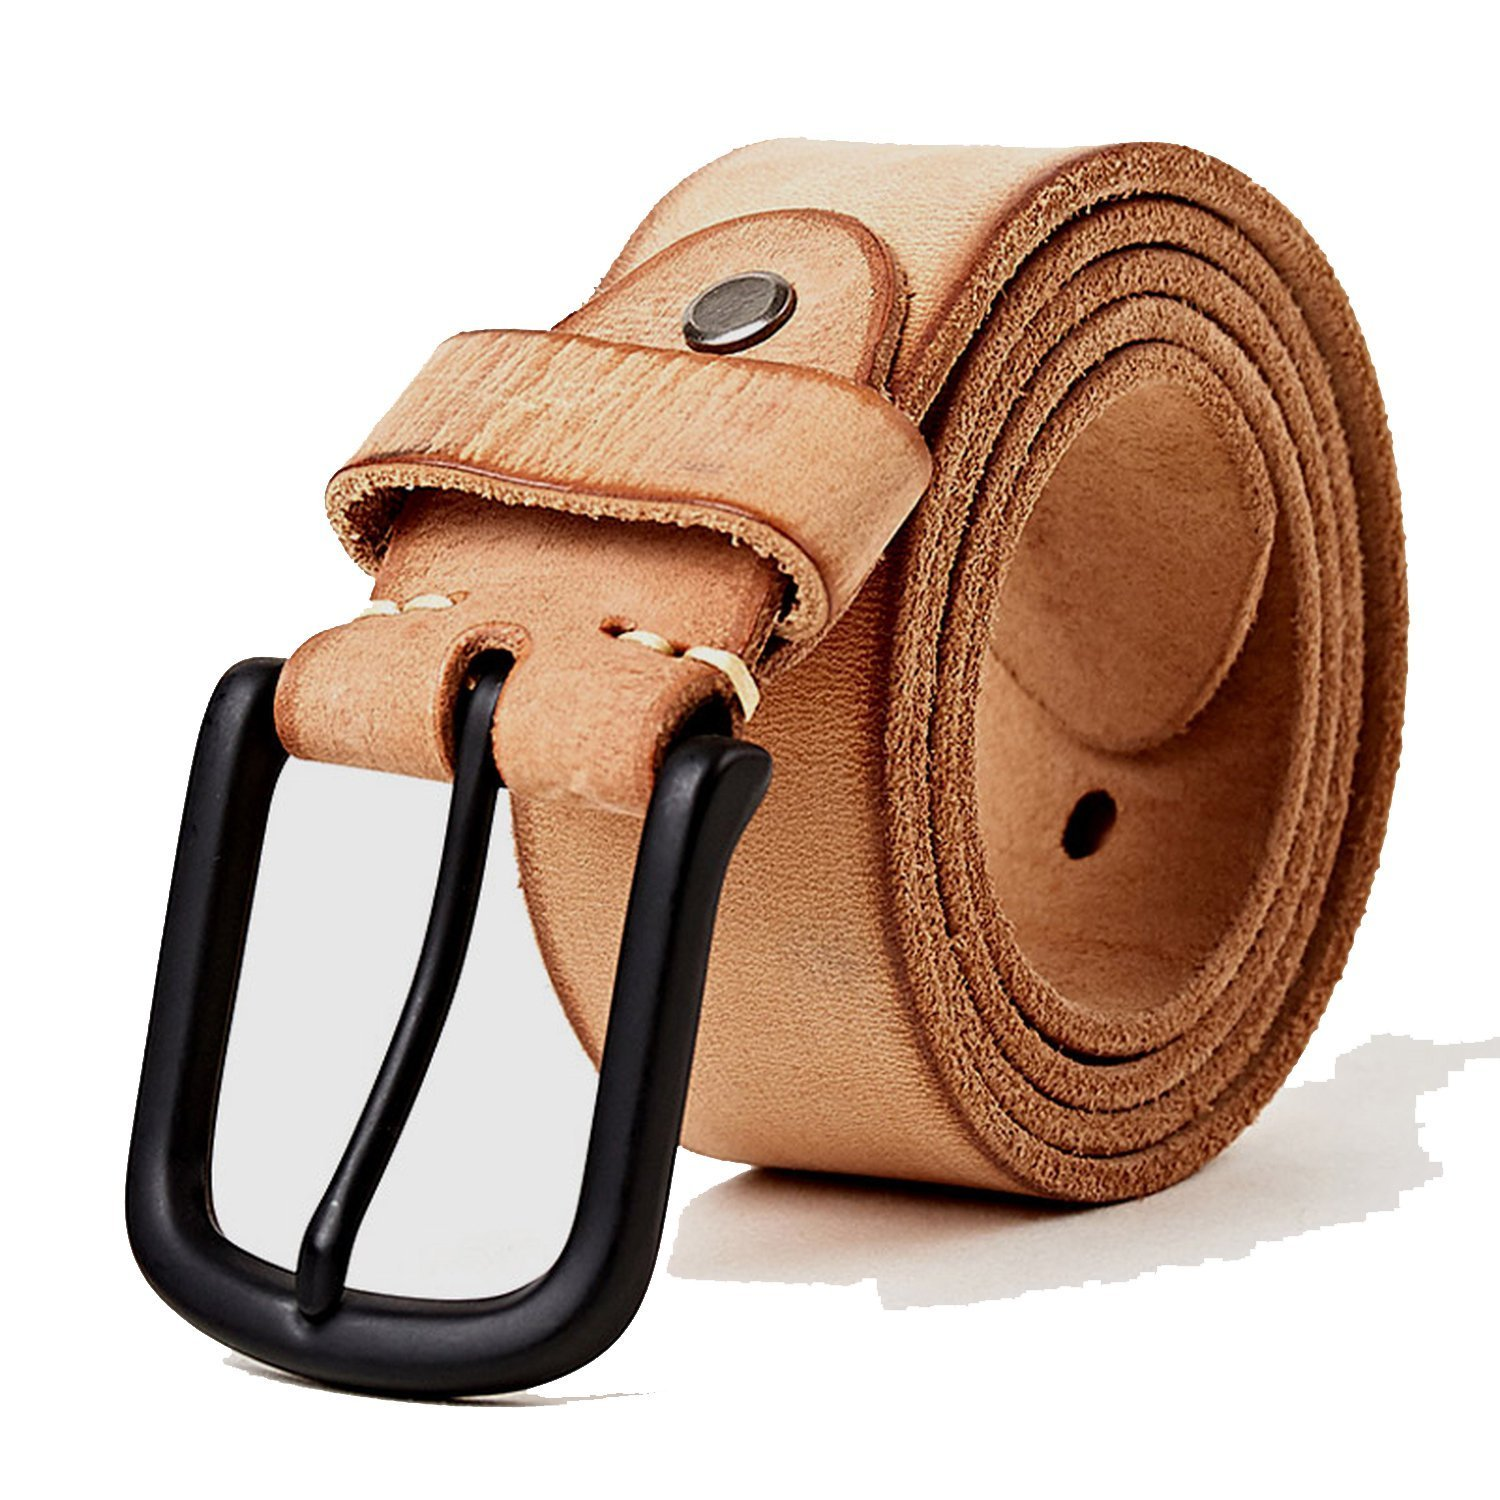 leather casual design belt's for men jeans casual pants men's leather belt Men's Gifts length,Camel,115cm